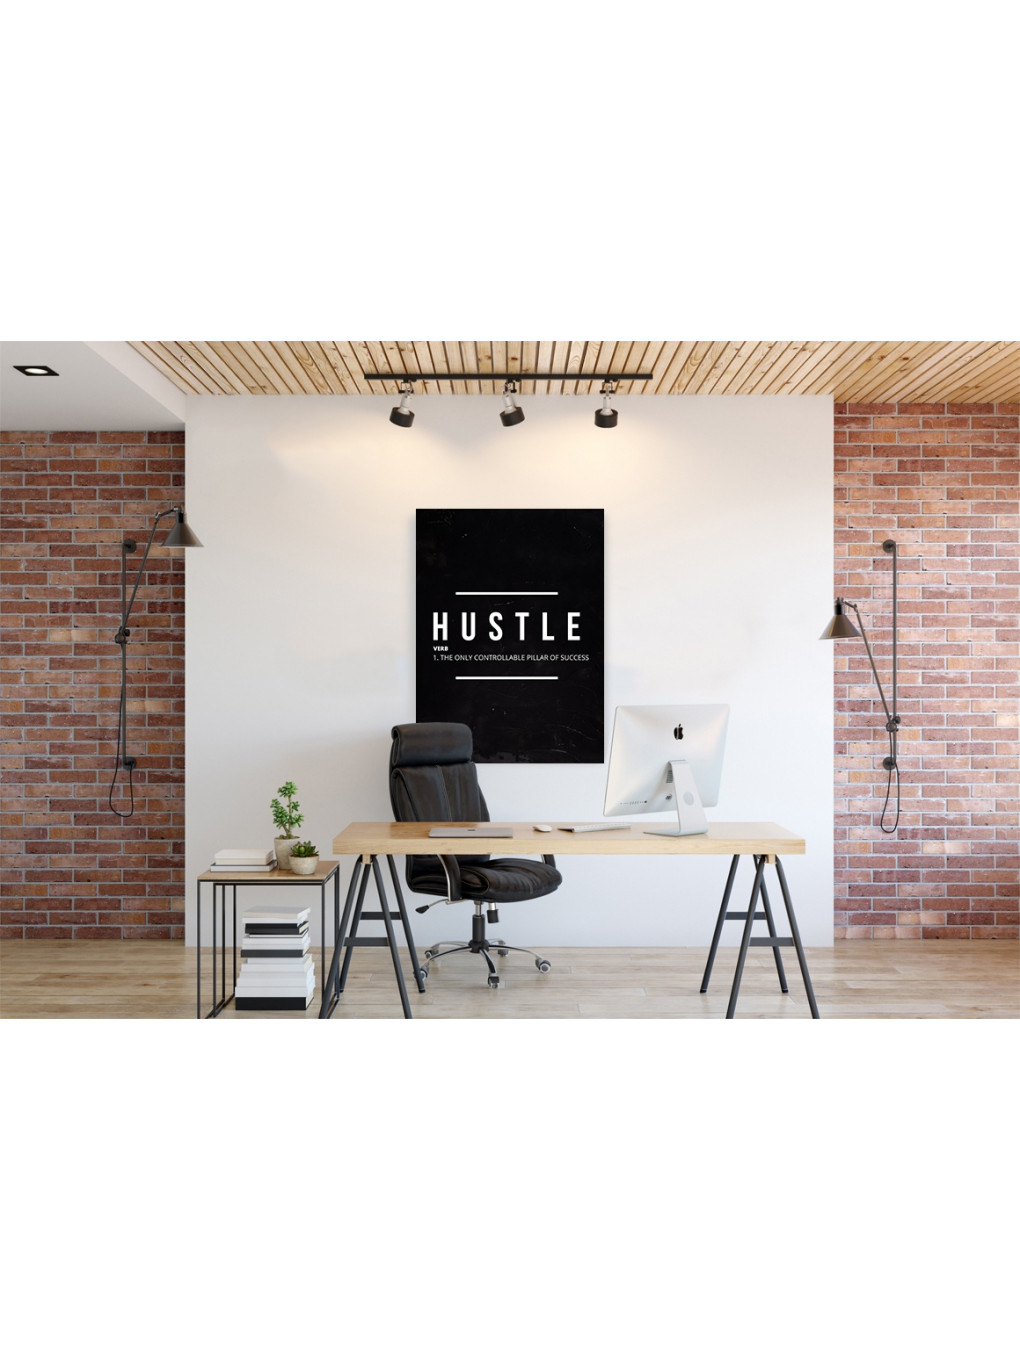 Hustle Verb_HUS481_1